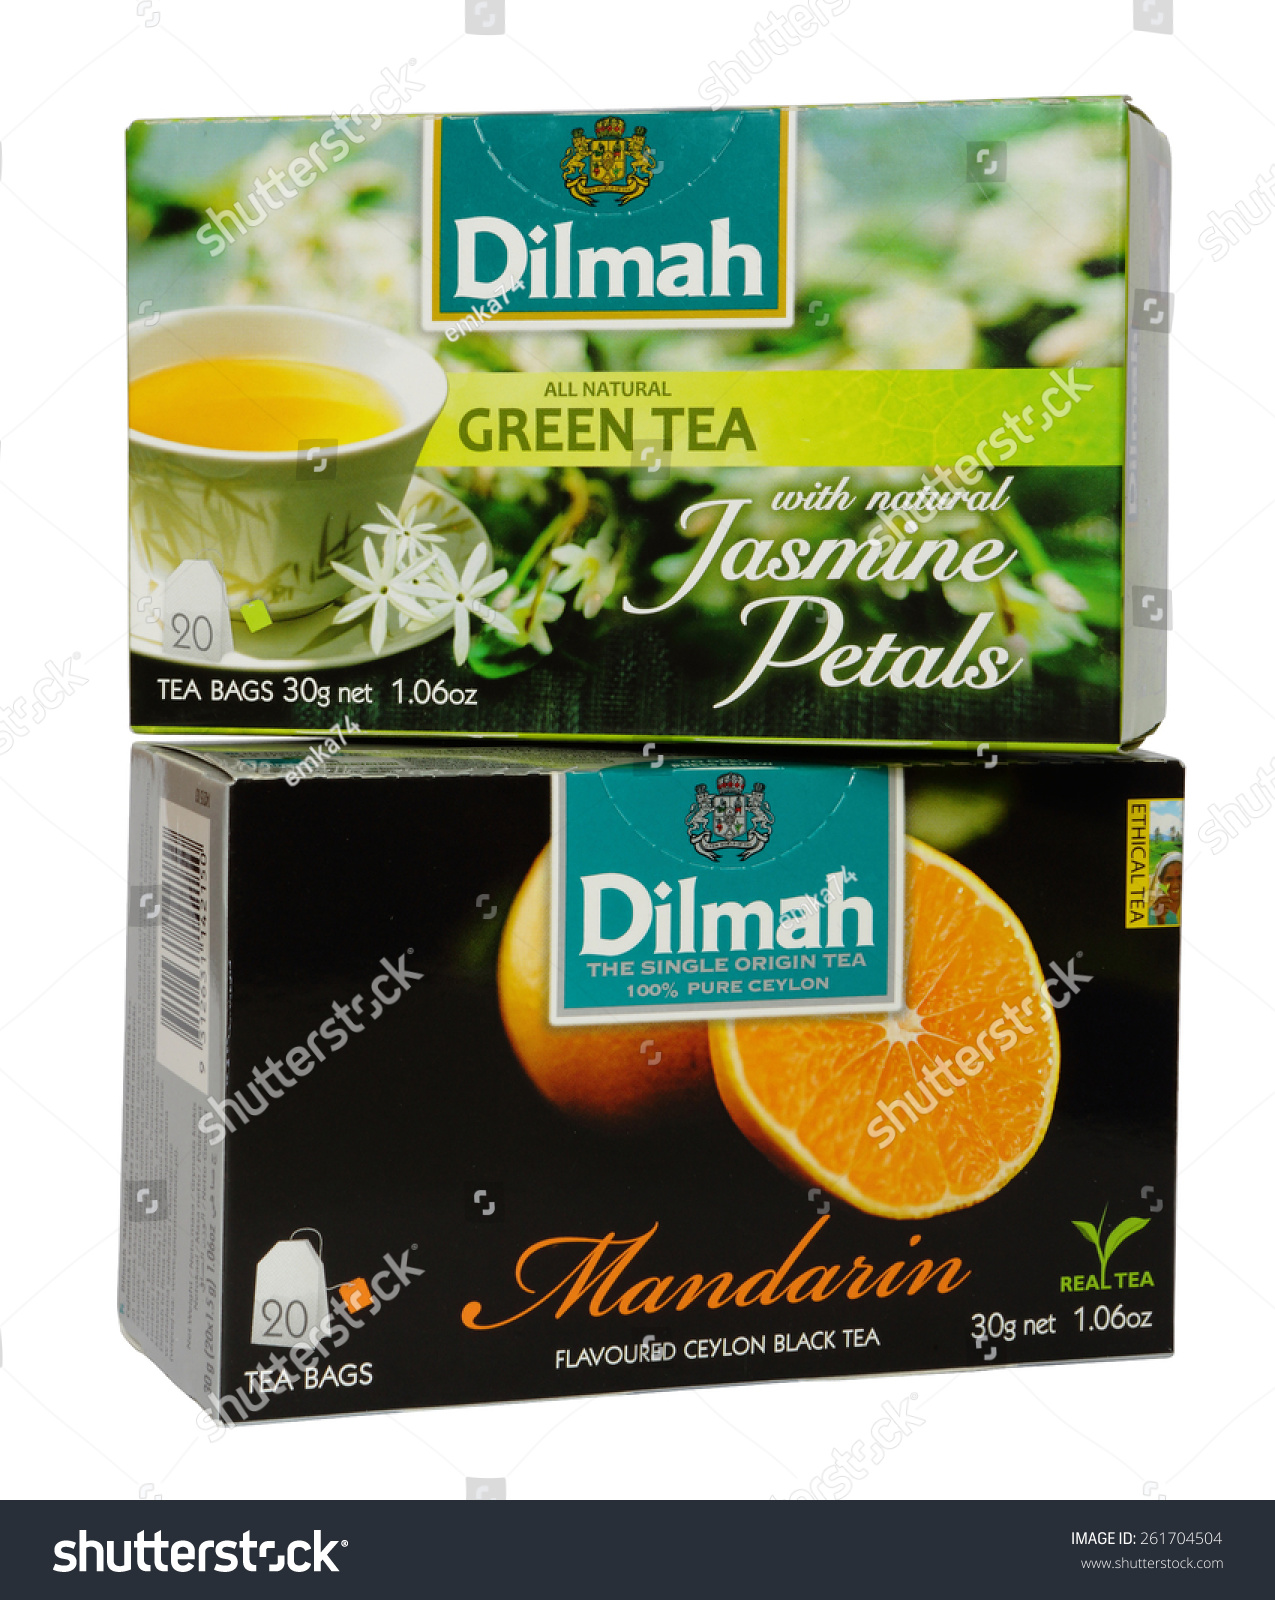 Malesice czech republic march 17 2015 stock photo royalty free malesice czech republic march 17 2015 dilmah green tea jasmine petals and izmirmasajfo Images